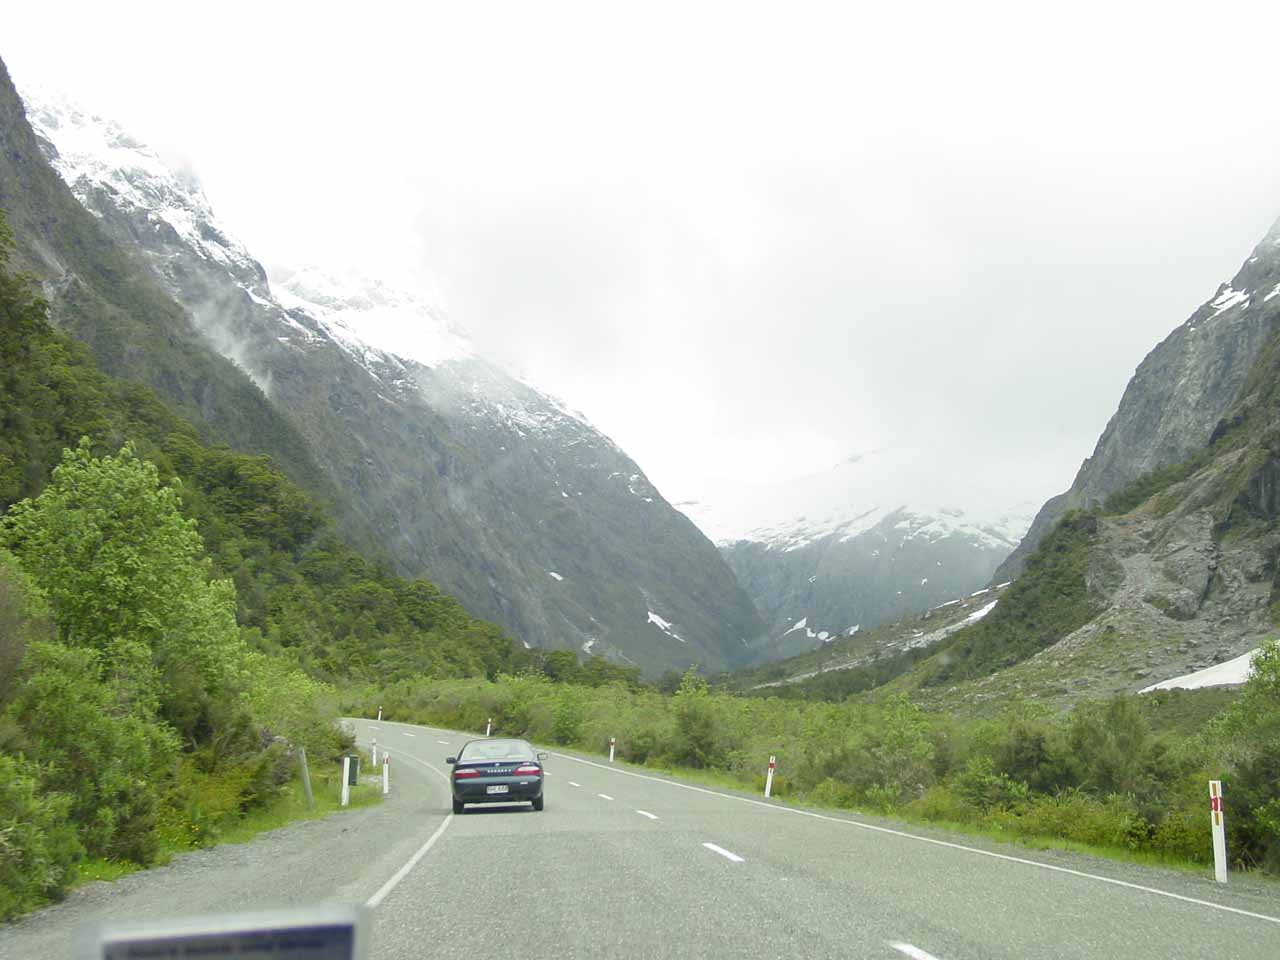 Driving the Milford Sound Highway as we were making our approach towards Christie Falls and eventually the Homer Tunnel